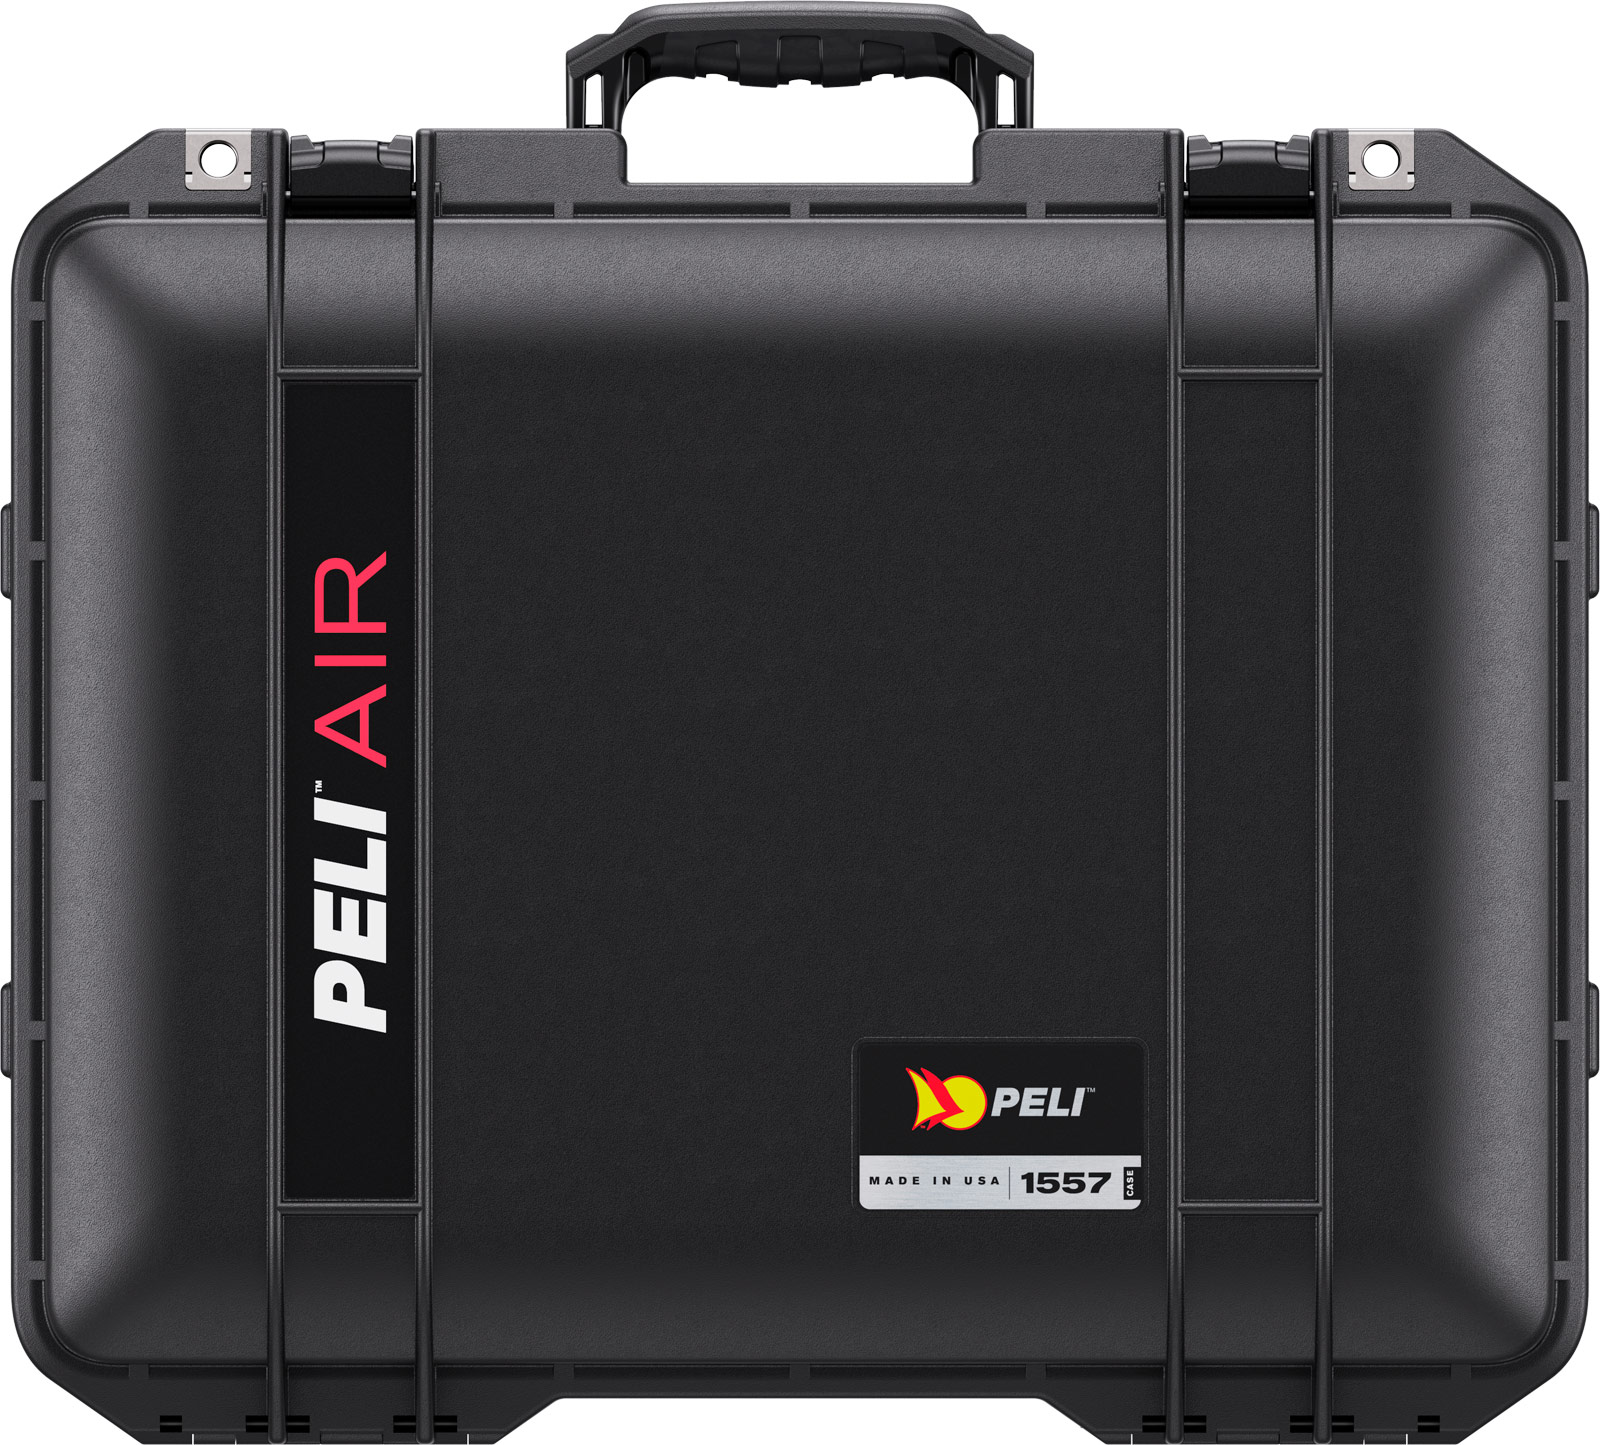 peli drone cases 1557 air case